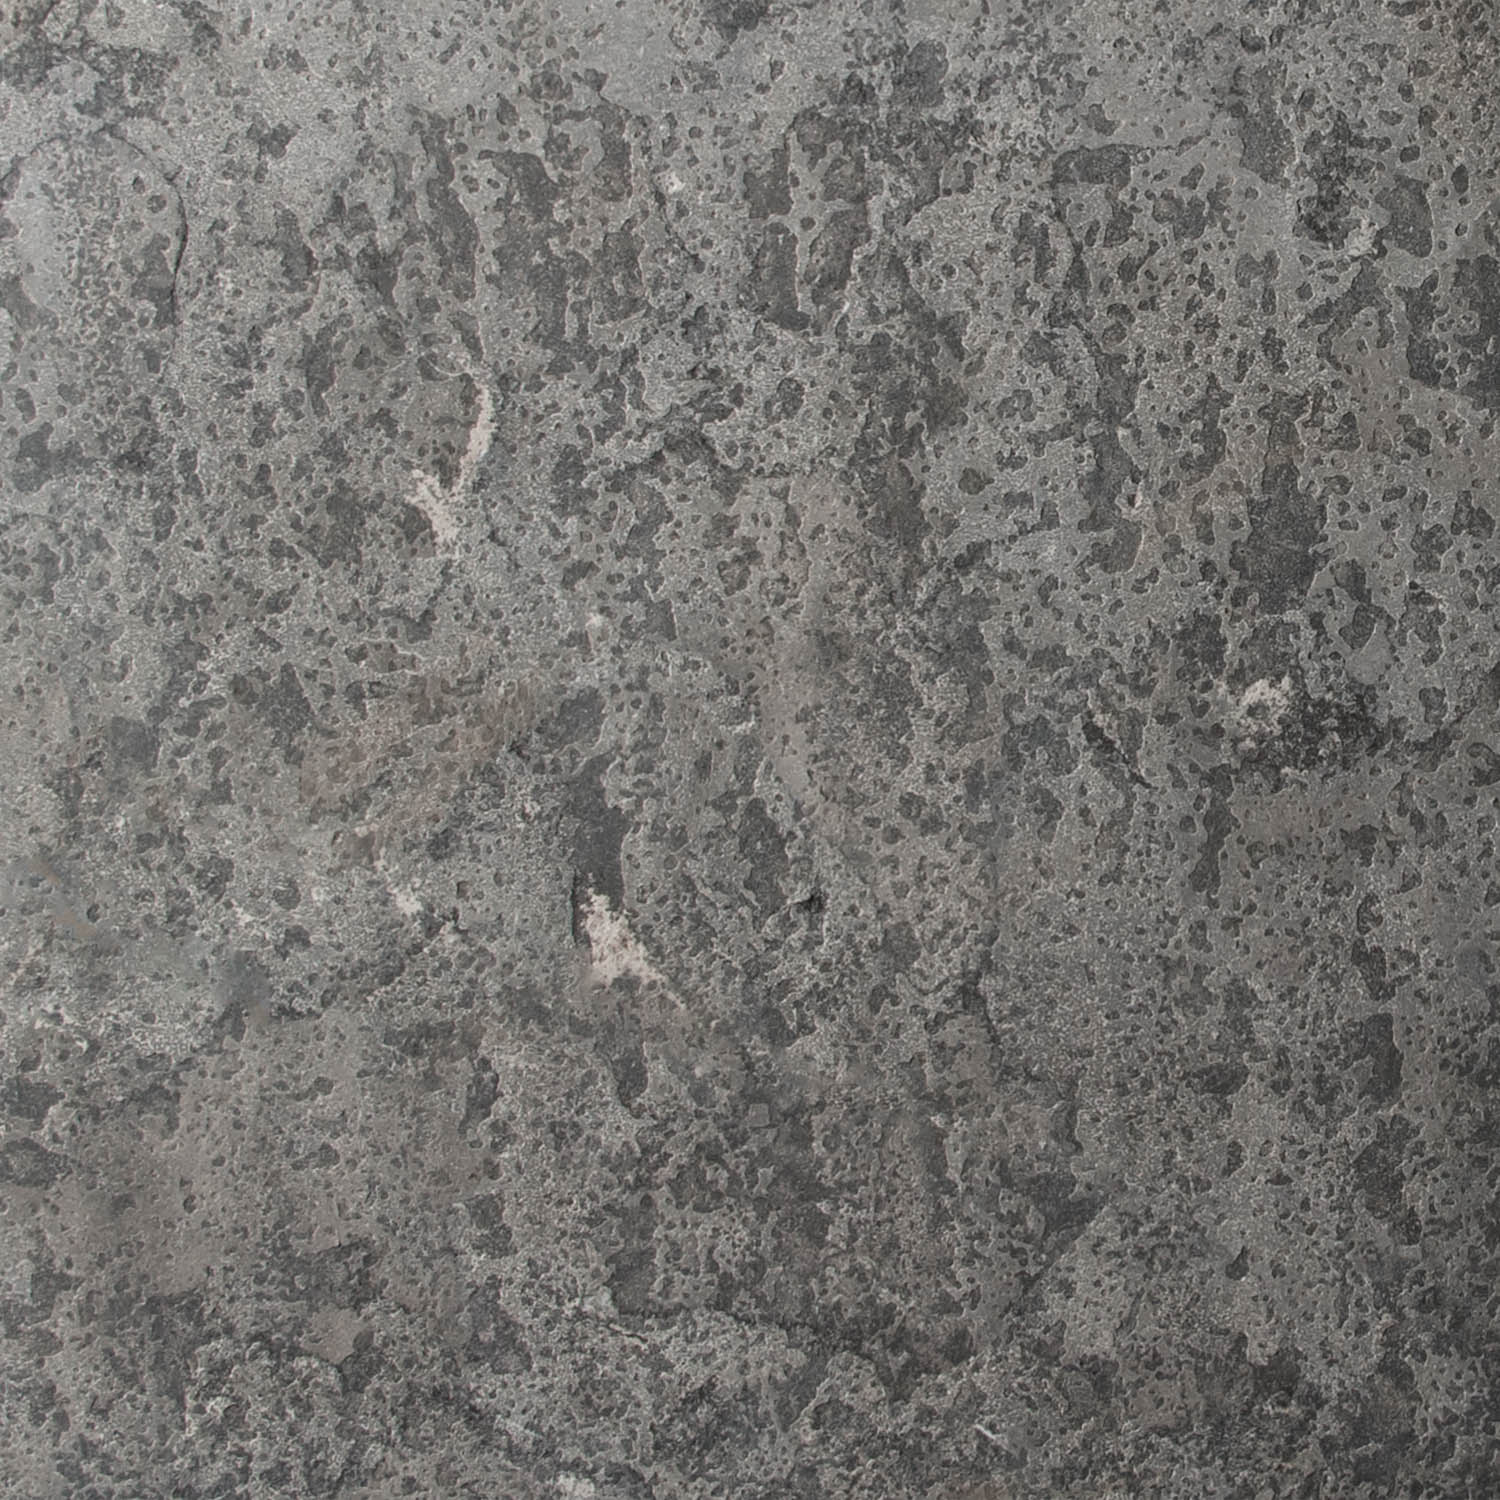 India Silver Grey flamed outdoor kitchen countertop swatch